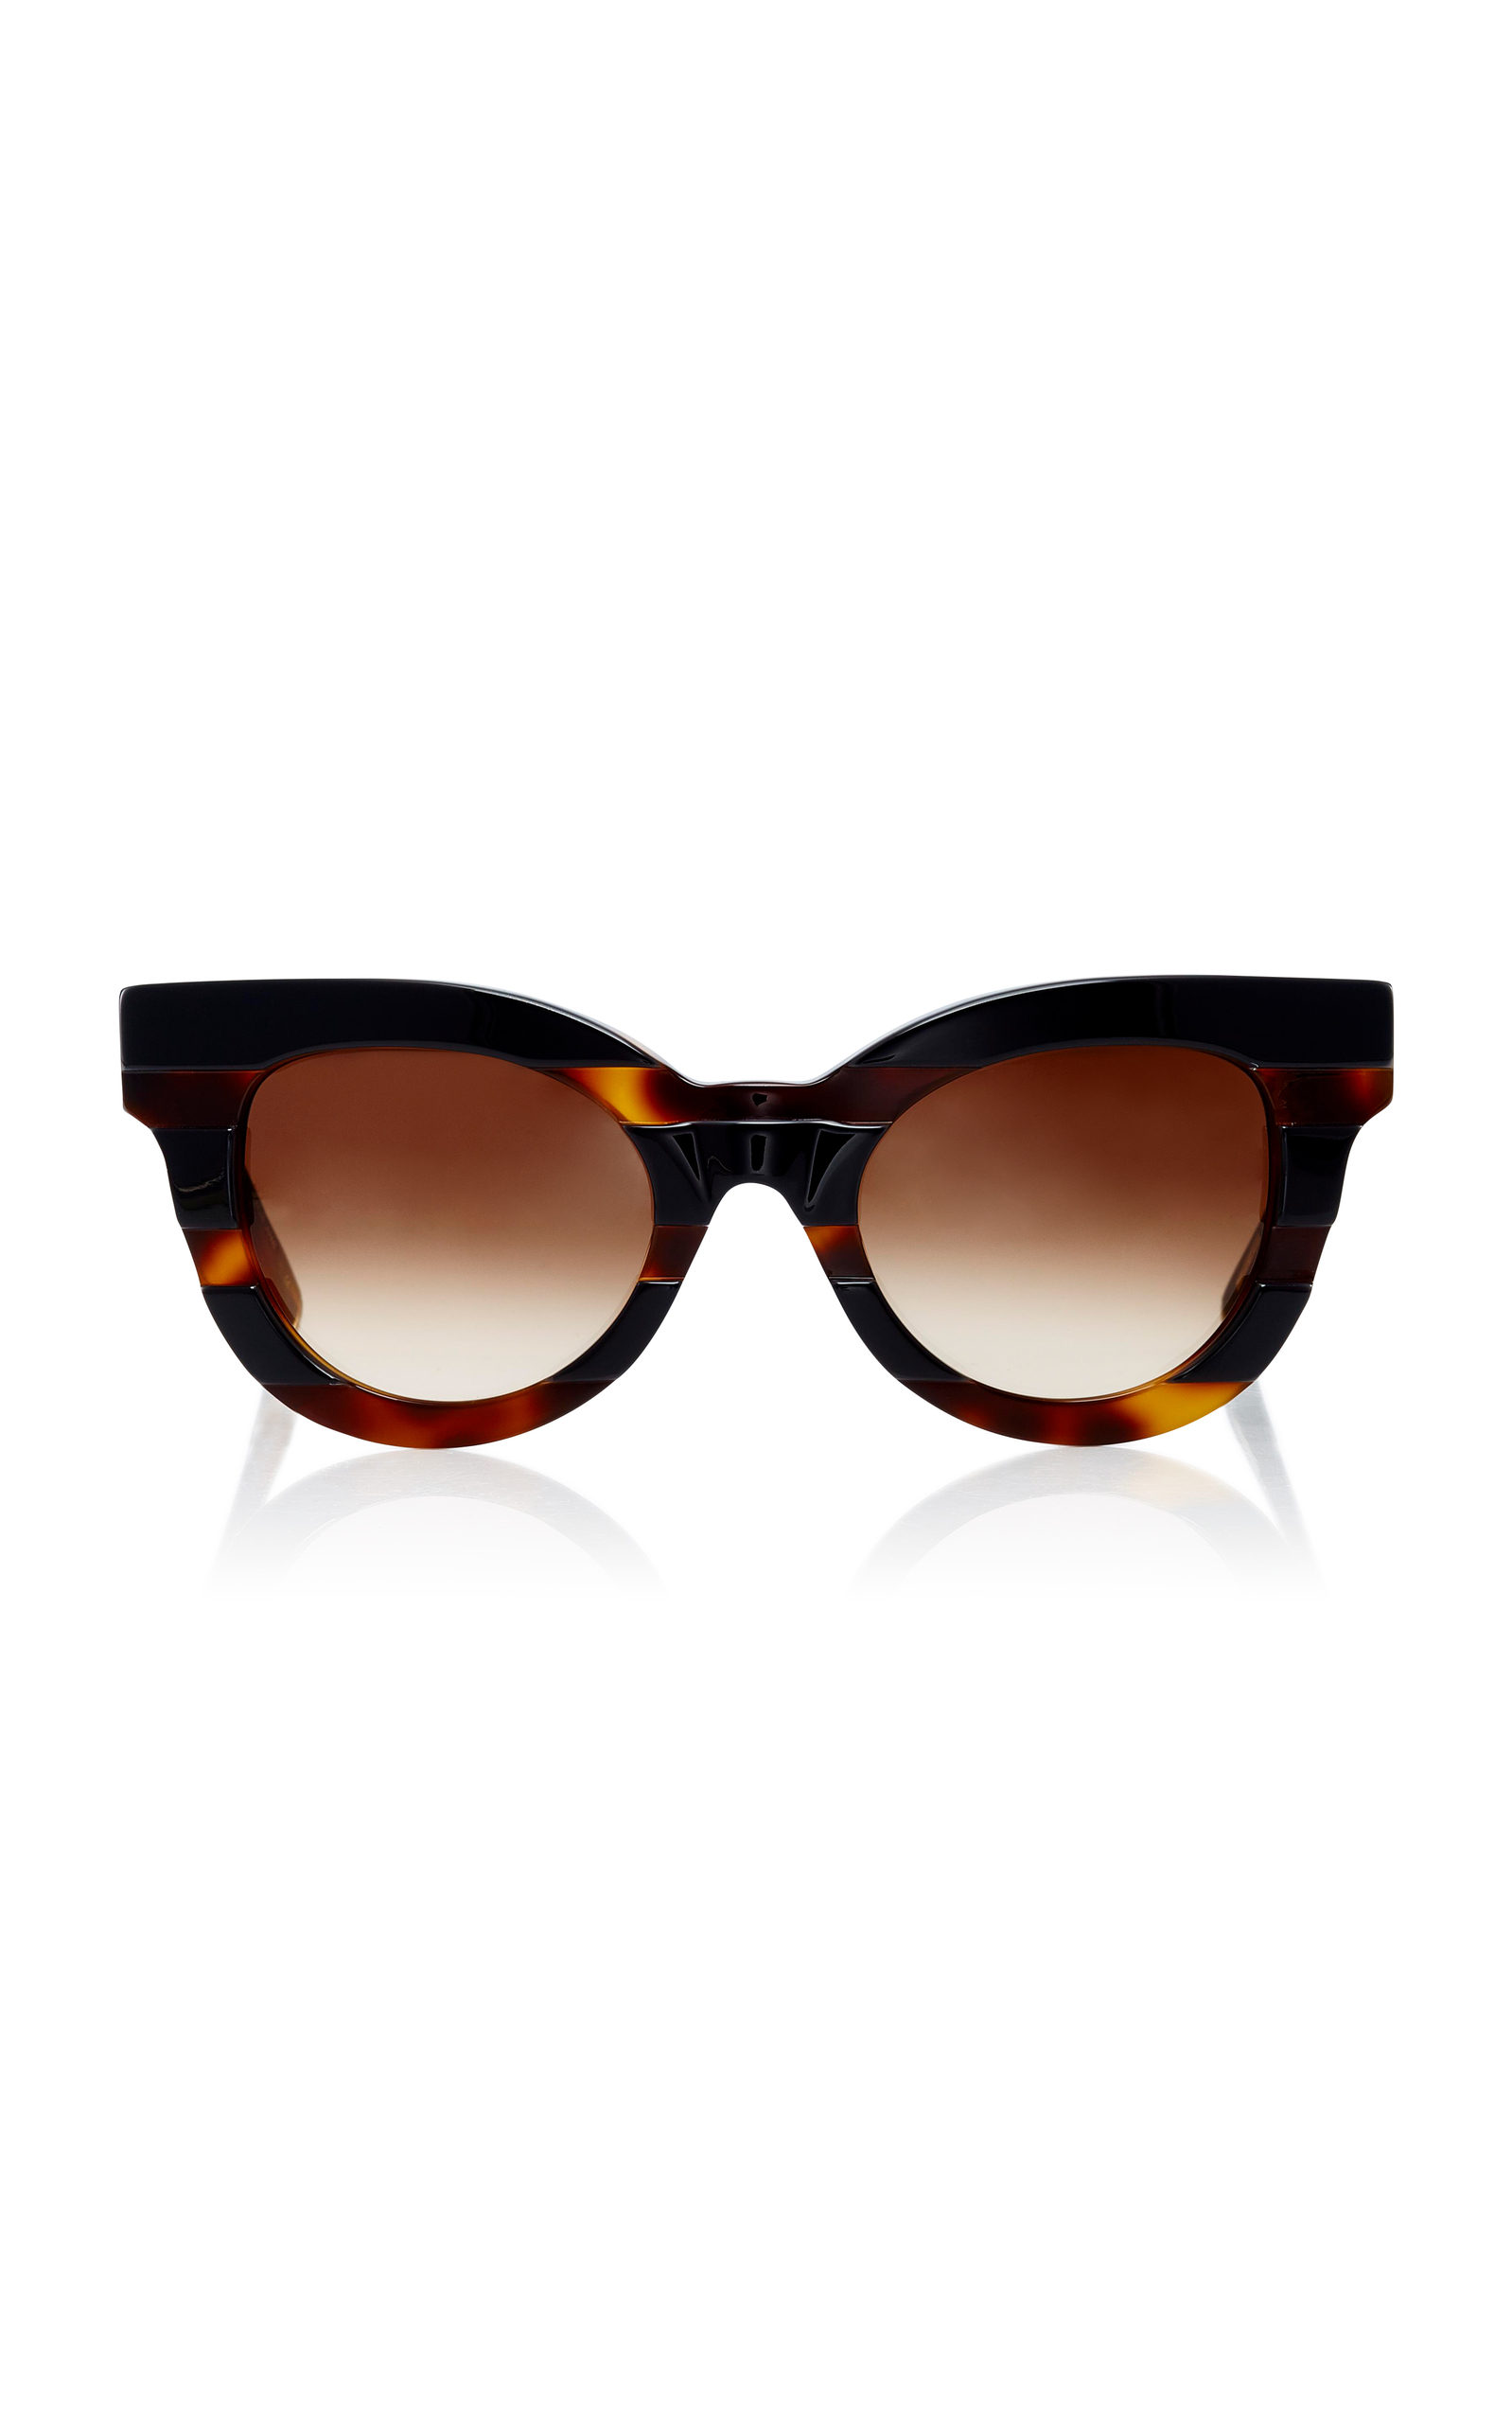 KATE YOUNG CHRISTY CAT-EYE SUNGLASSES